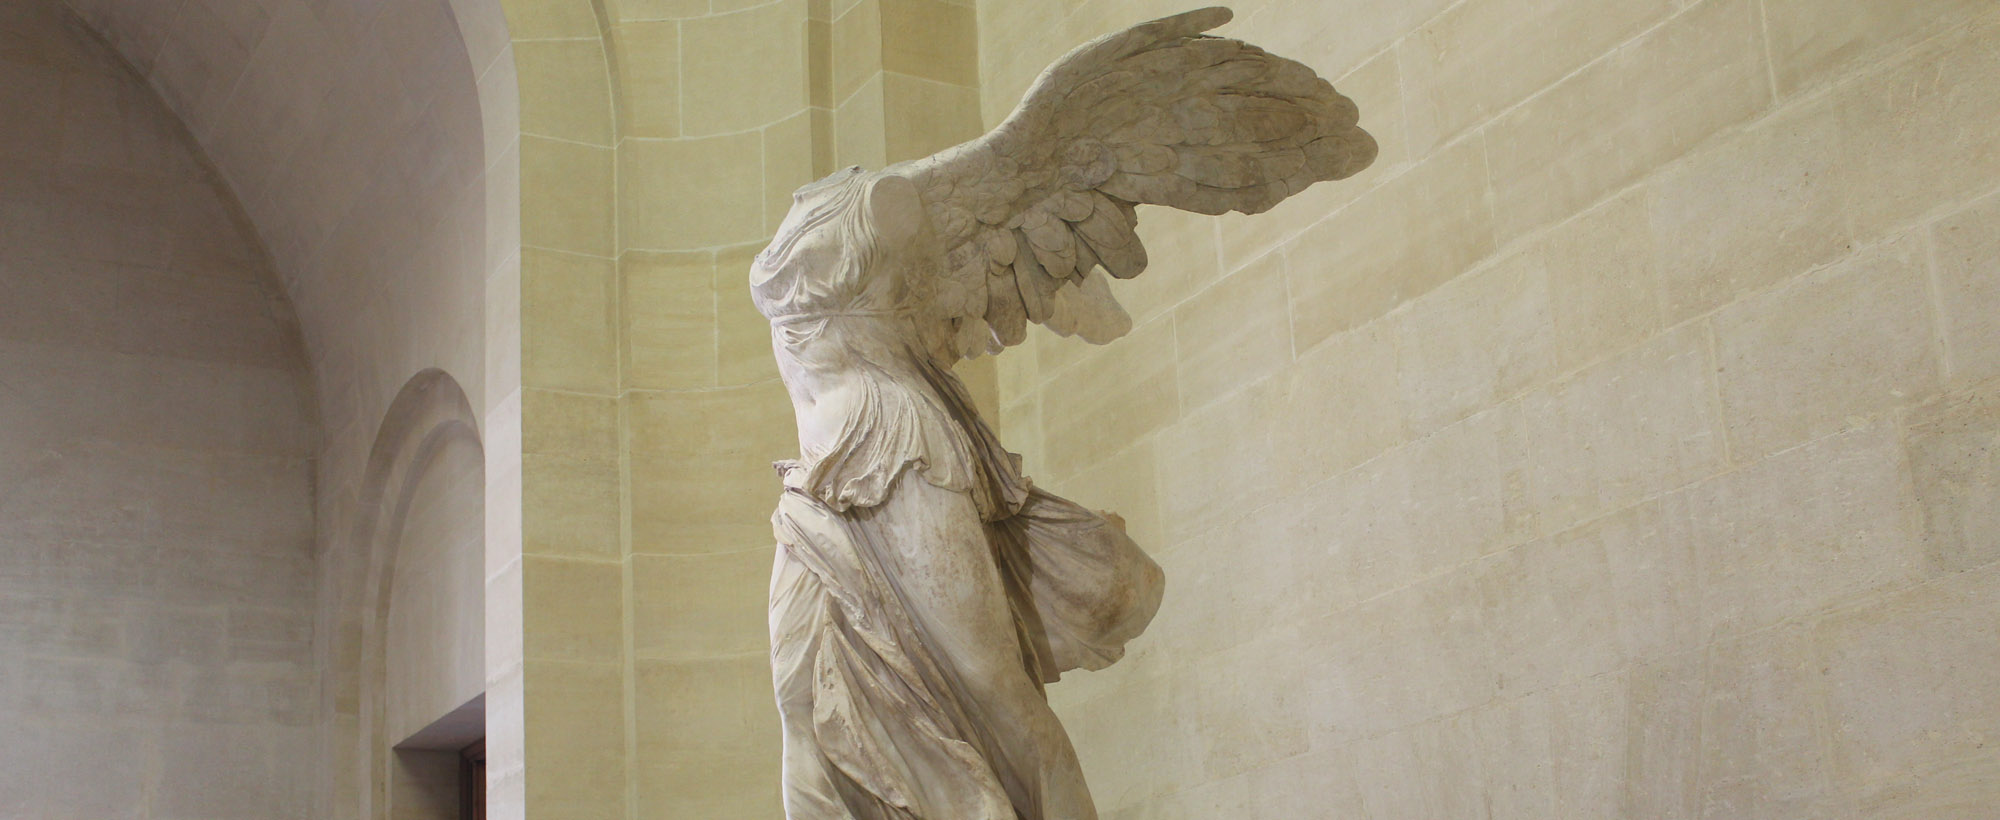 The Winged Victory of Samothrace at The Louvre